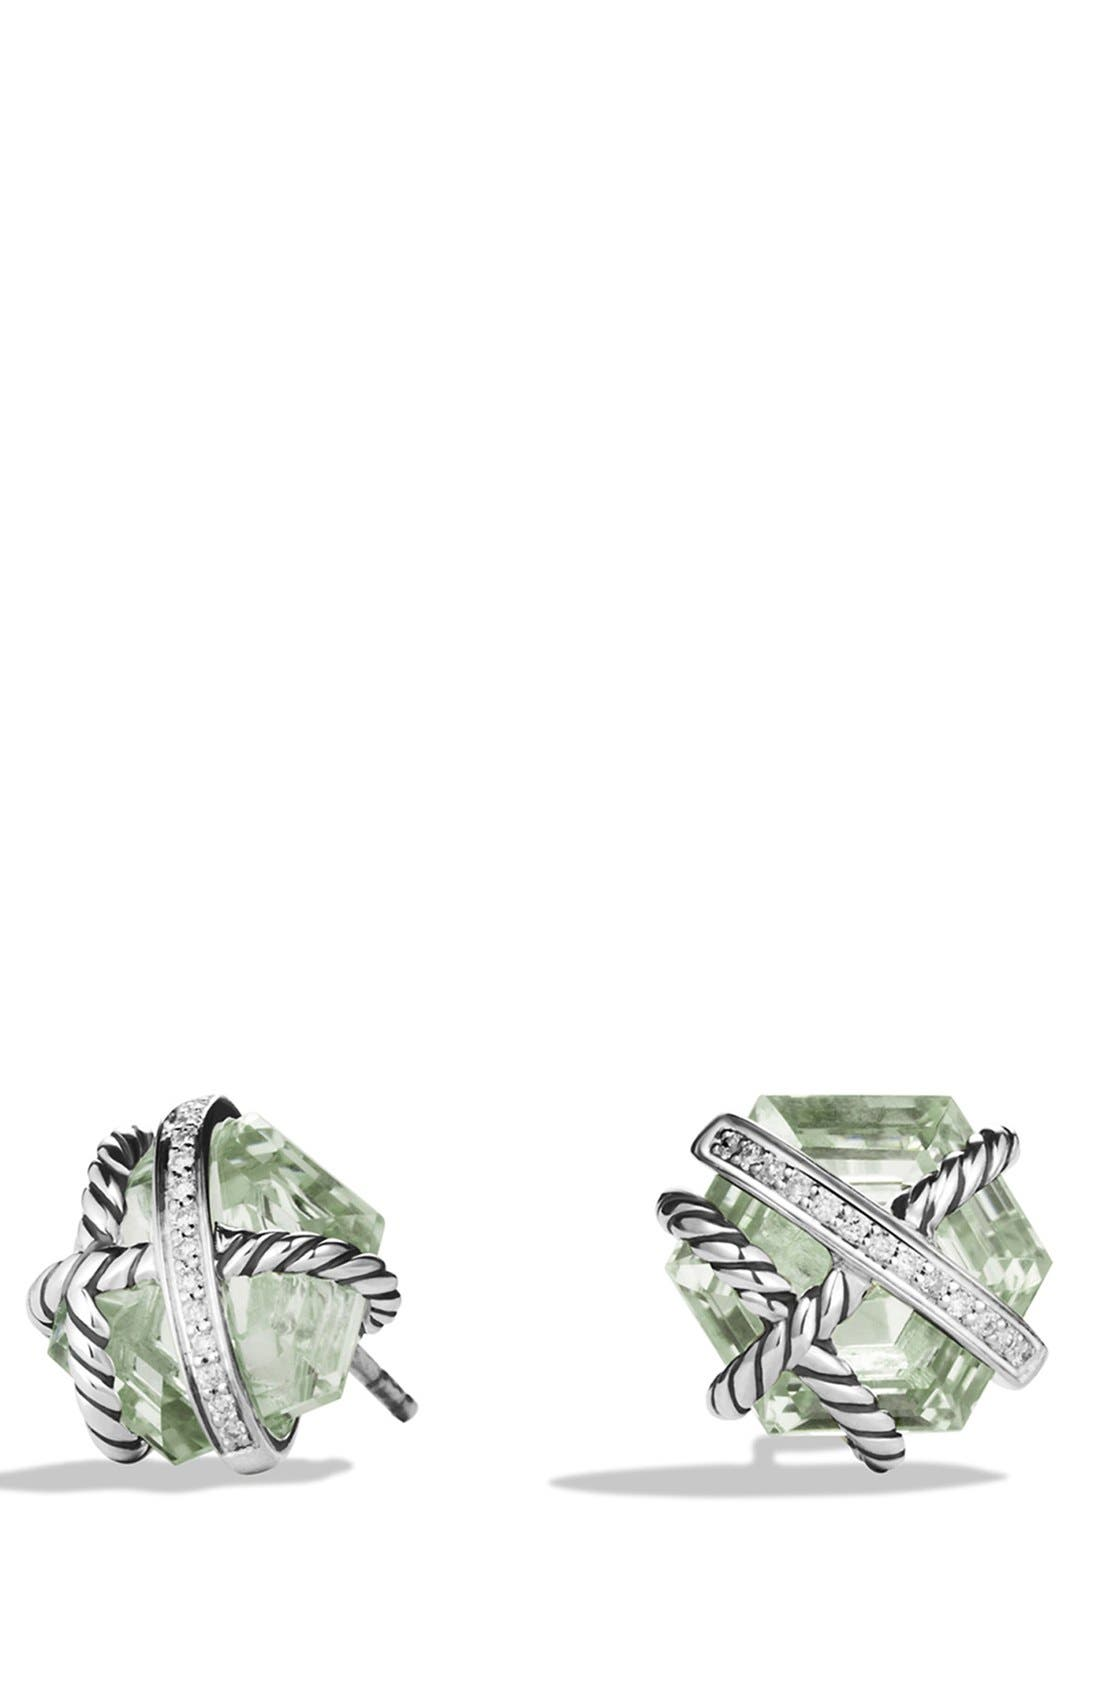 Main Image - David Yurman 'Cable Wrap' Earrings with Semiprecious Stones & Diamonds